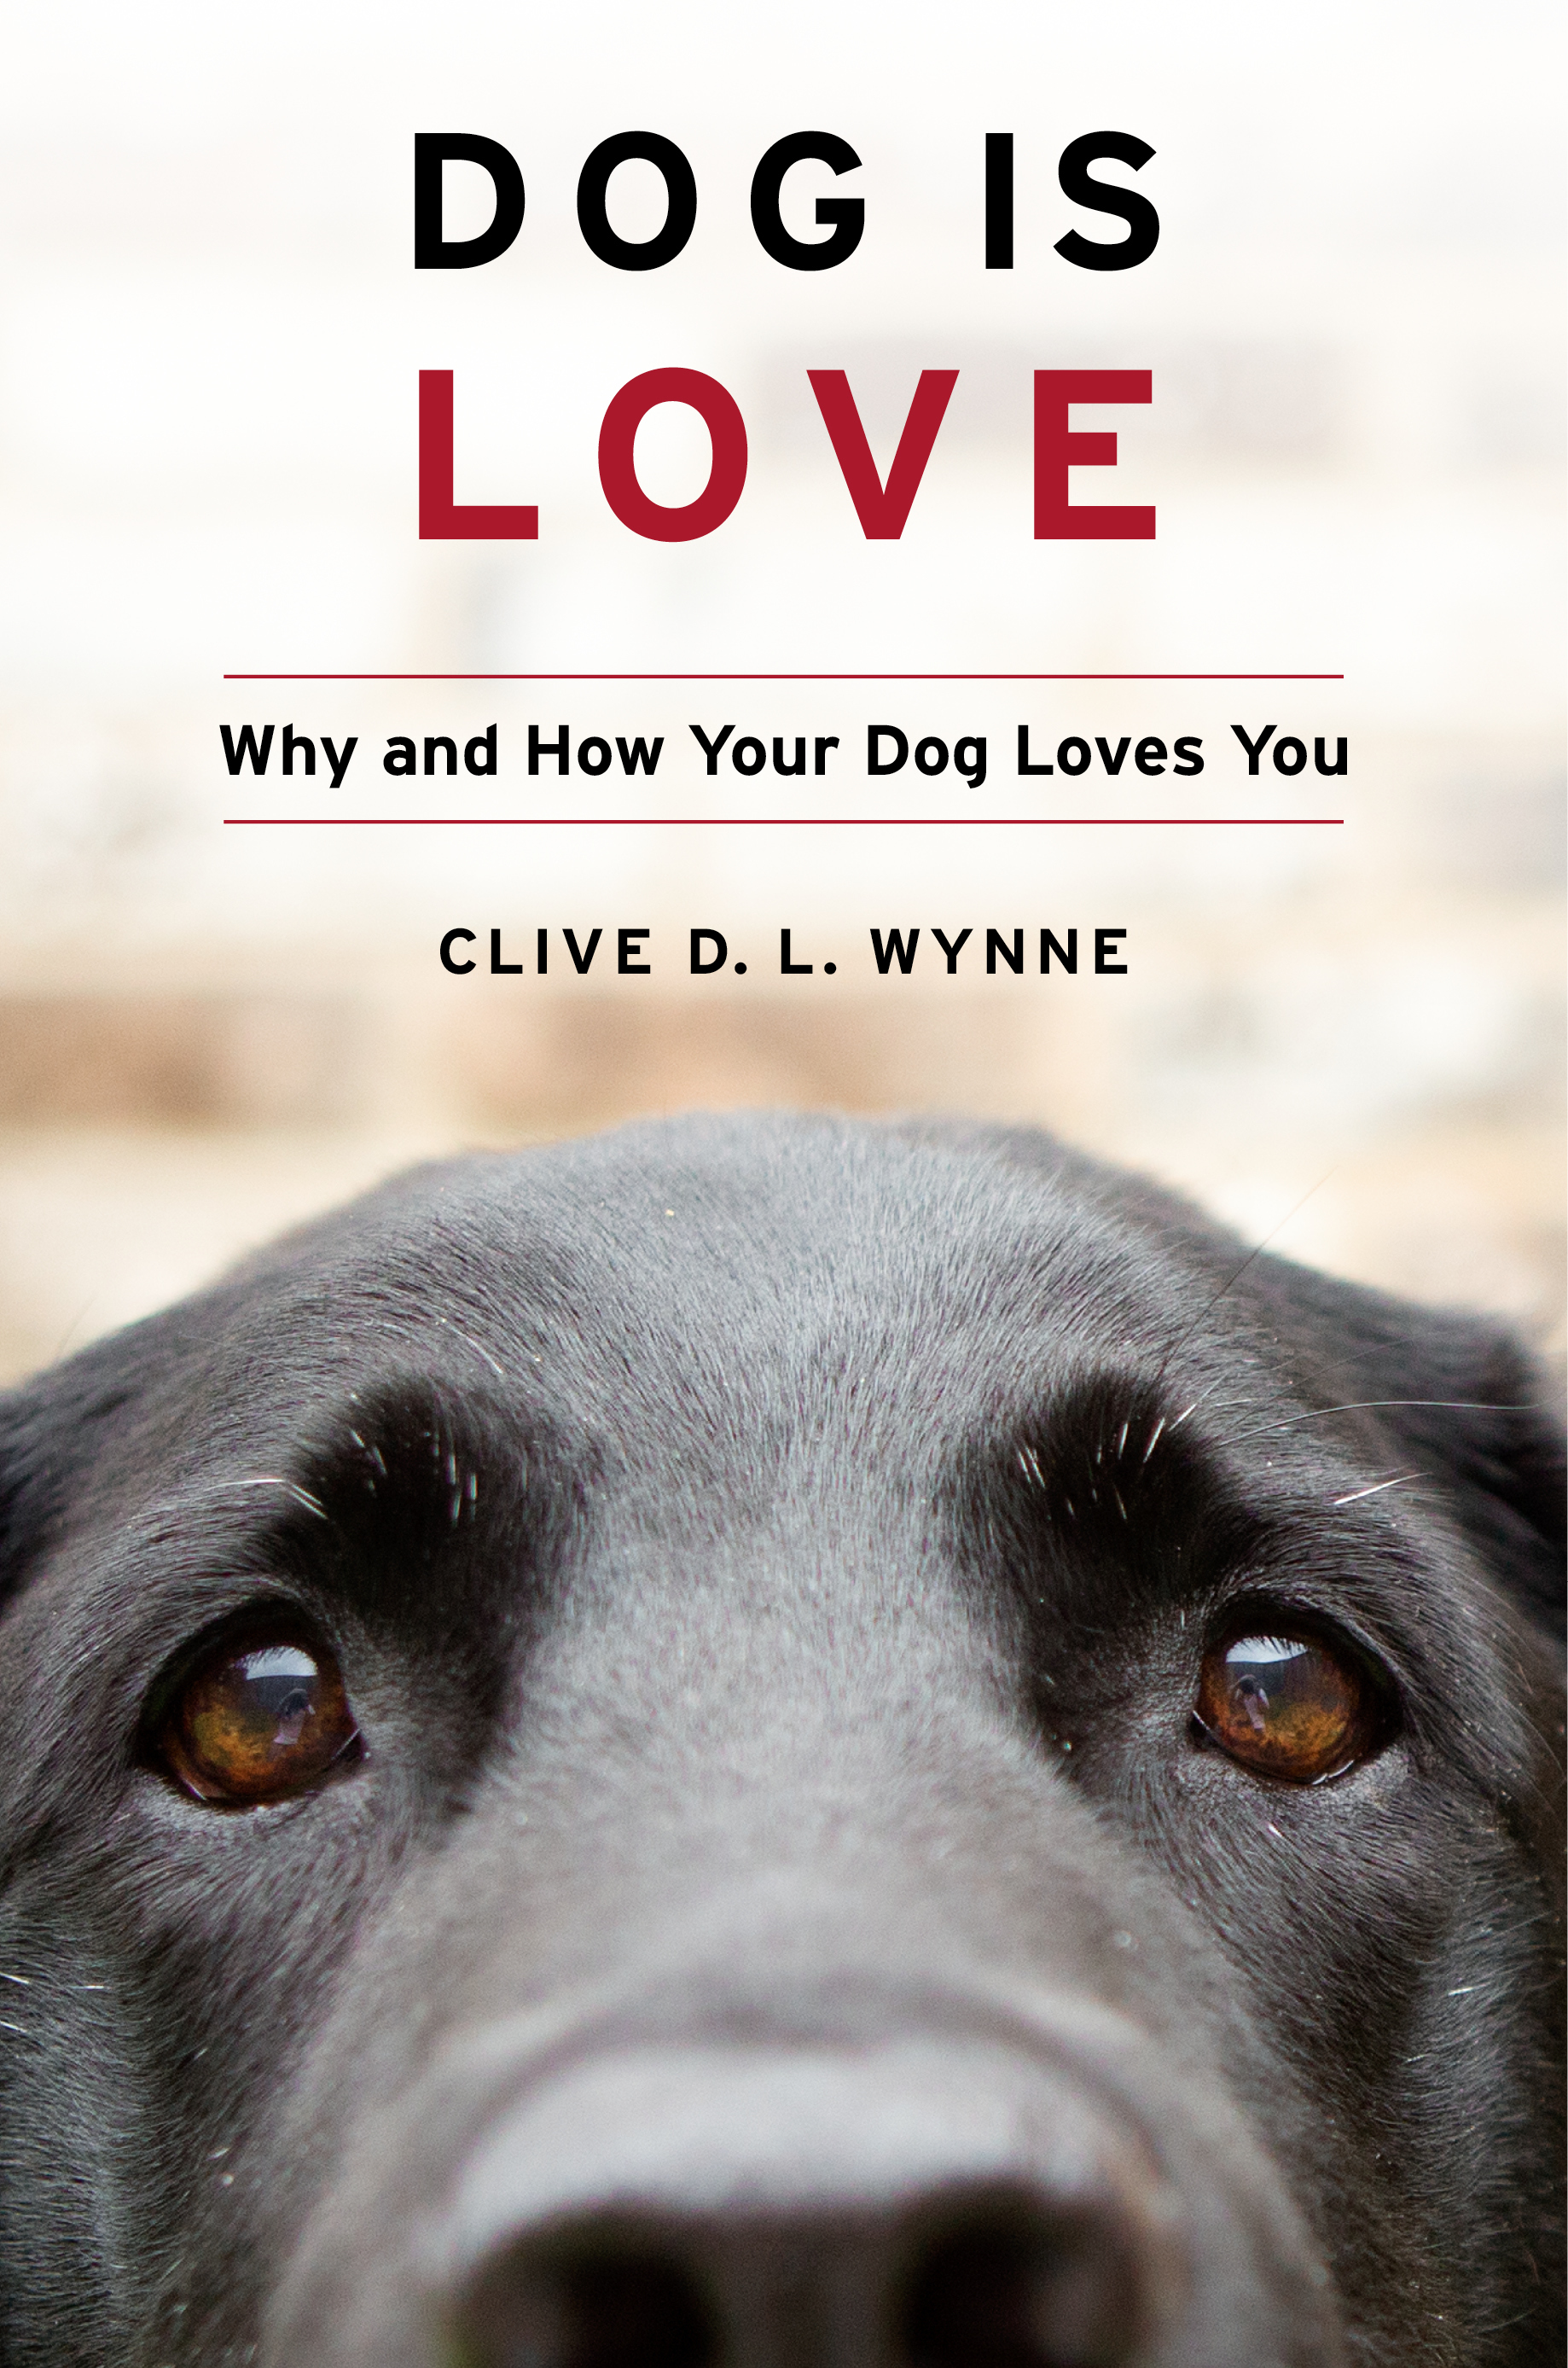 dog is love book cover unsized image